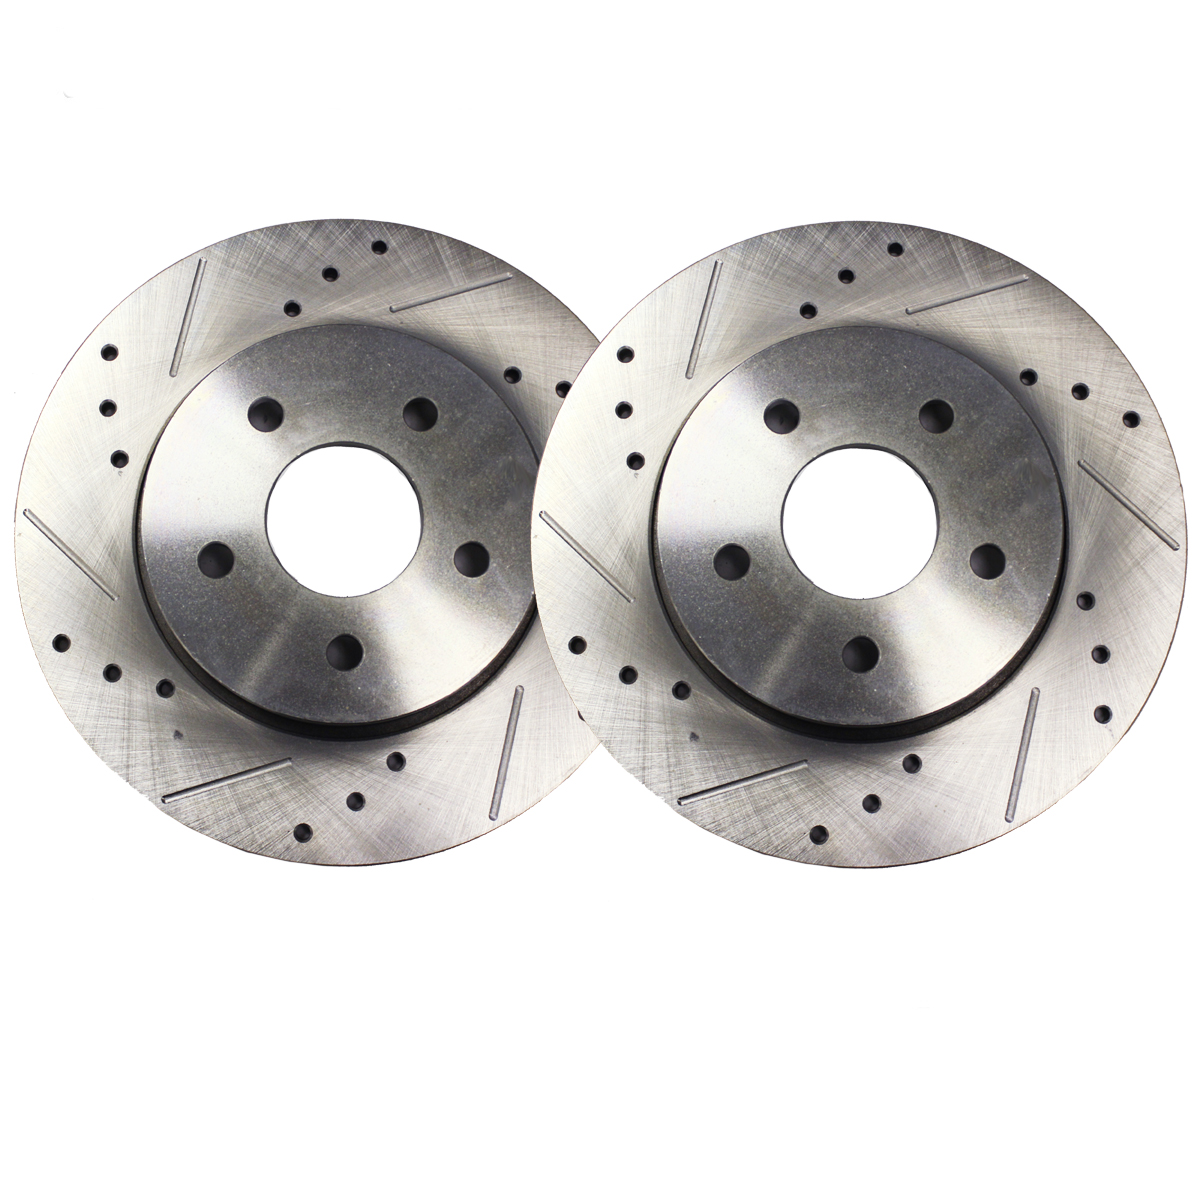 FRONT DRILLED /& SLOTTED BRAKE Rotors For Ford Fusion Lincoln MKZ Mazda 6 Milan